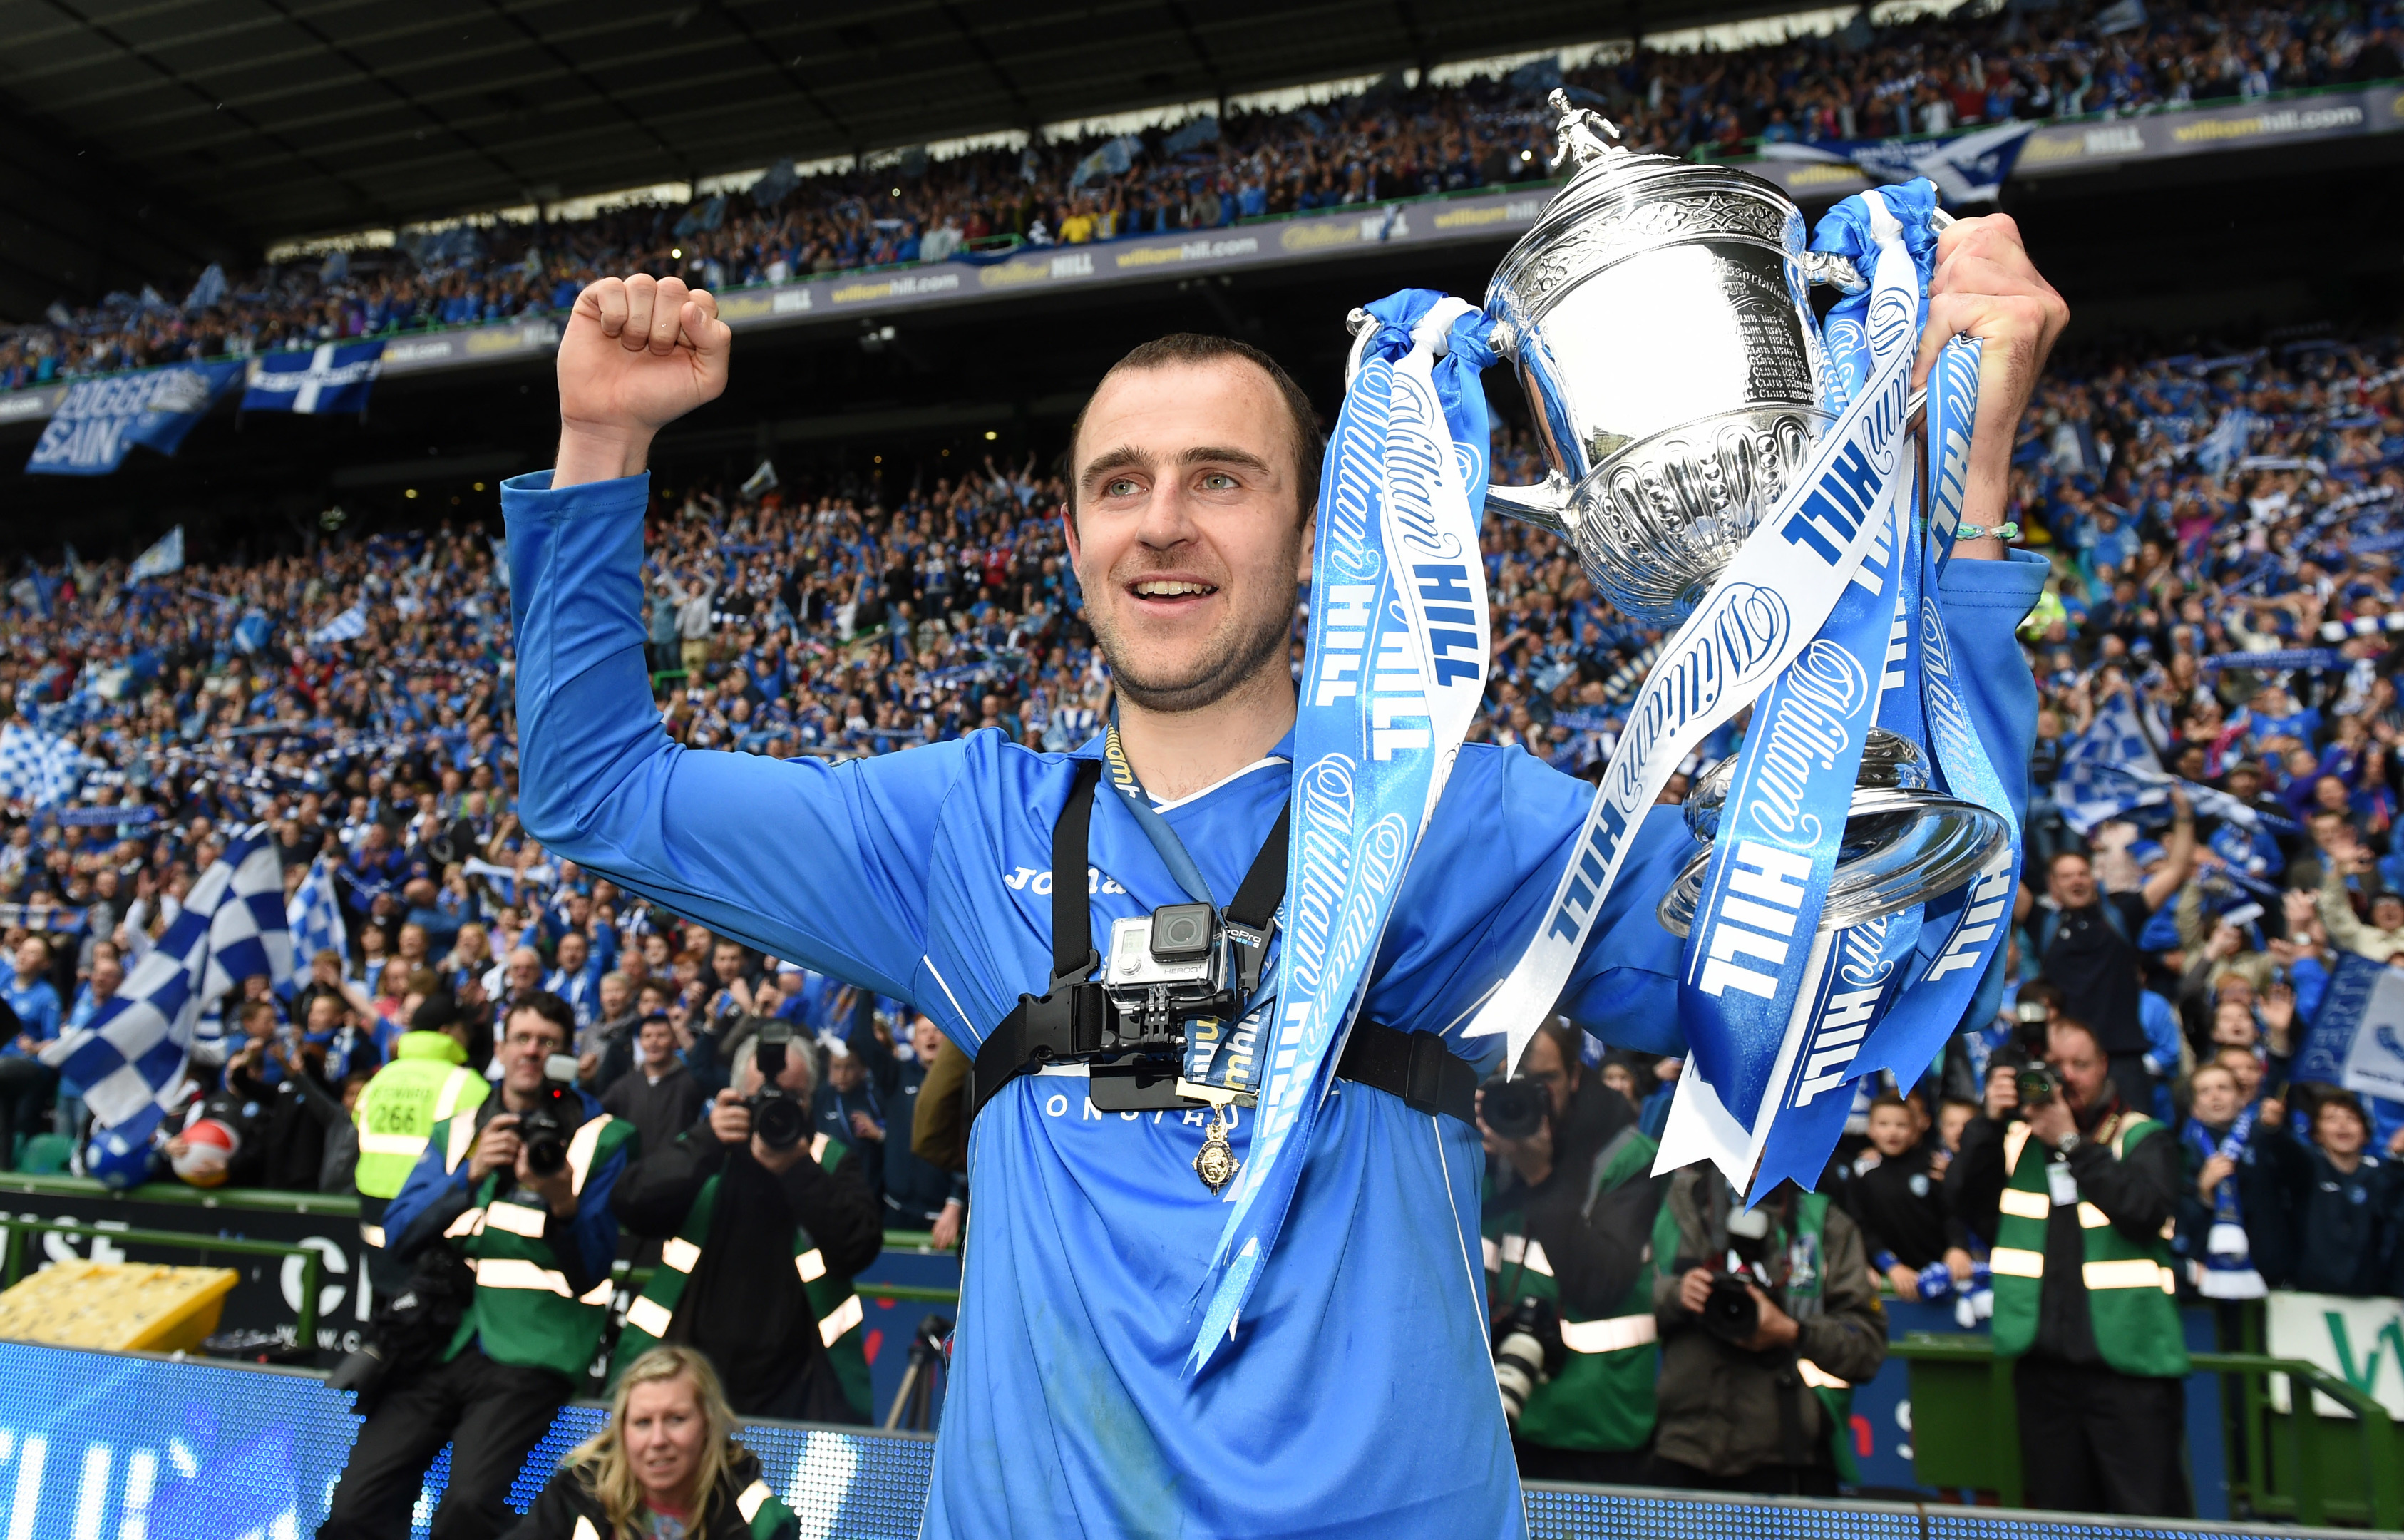 Dave Mackay won the Scottish Cup with St Johnstone in 2014